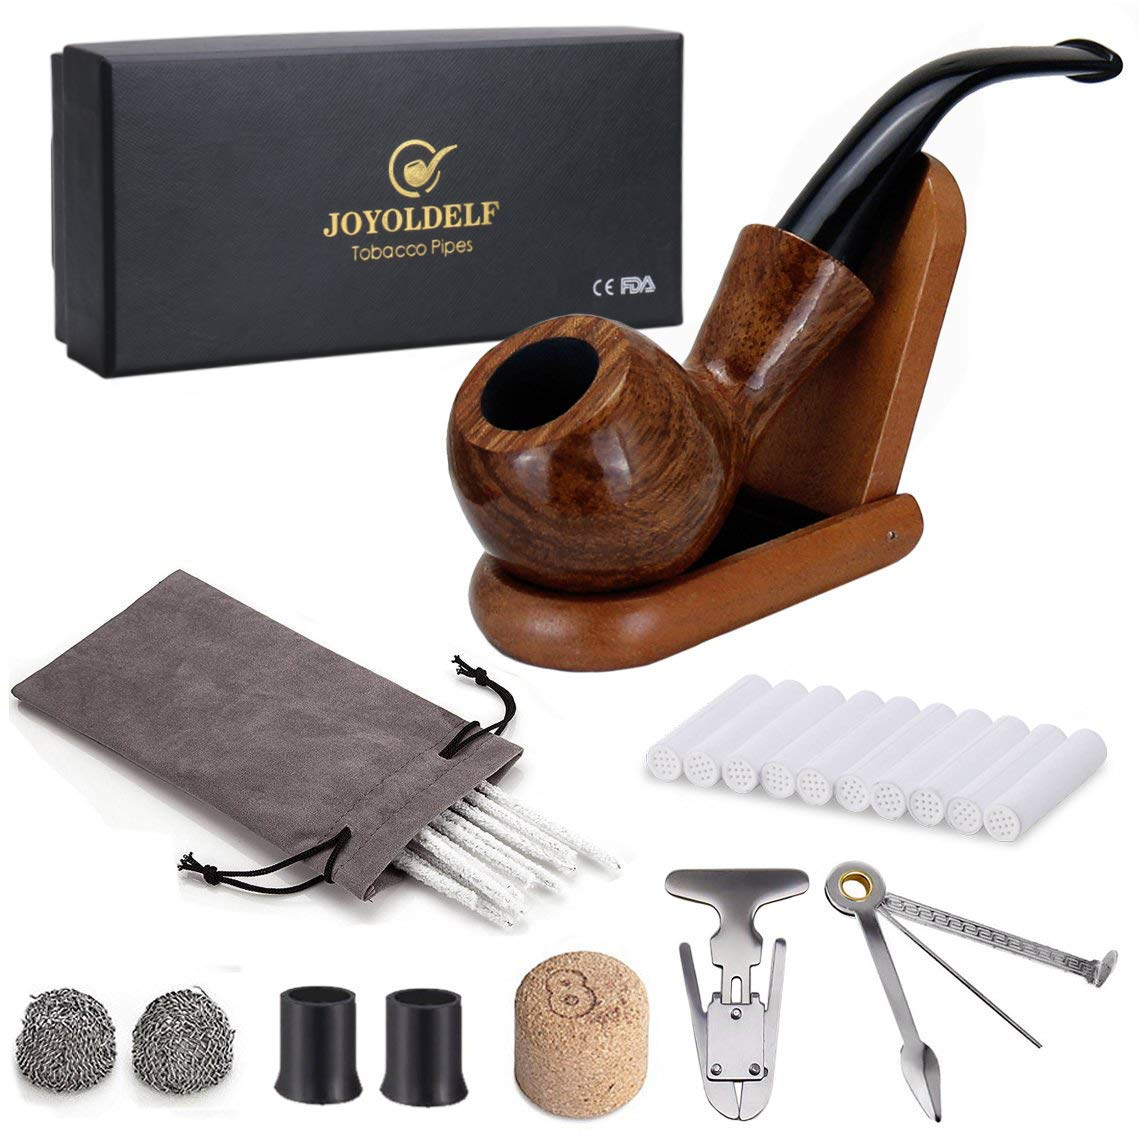 Joyoldelf Rosewood Tobacco Pipe Set with Wooden Stand, Reamer & 3-in-1 Pipe Scraper, 20 Pipe Cleaners & 10 Pipe Filters, 2 Pipe Bits & Metal Balls, Cork Knocker, Pipe Pouch, Bonus a Gift Box by Joyoldelf